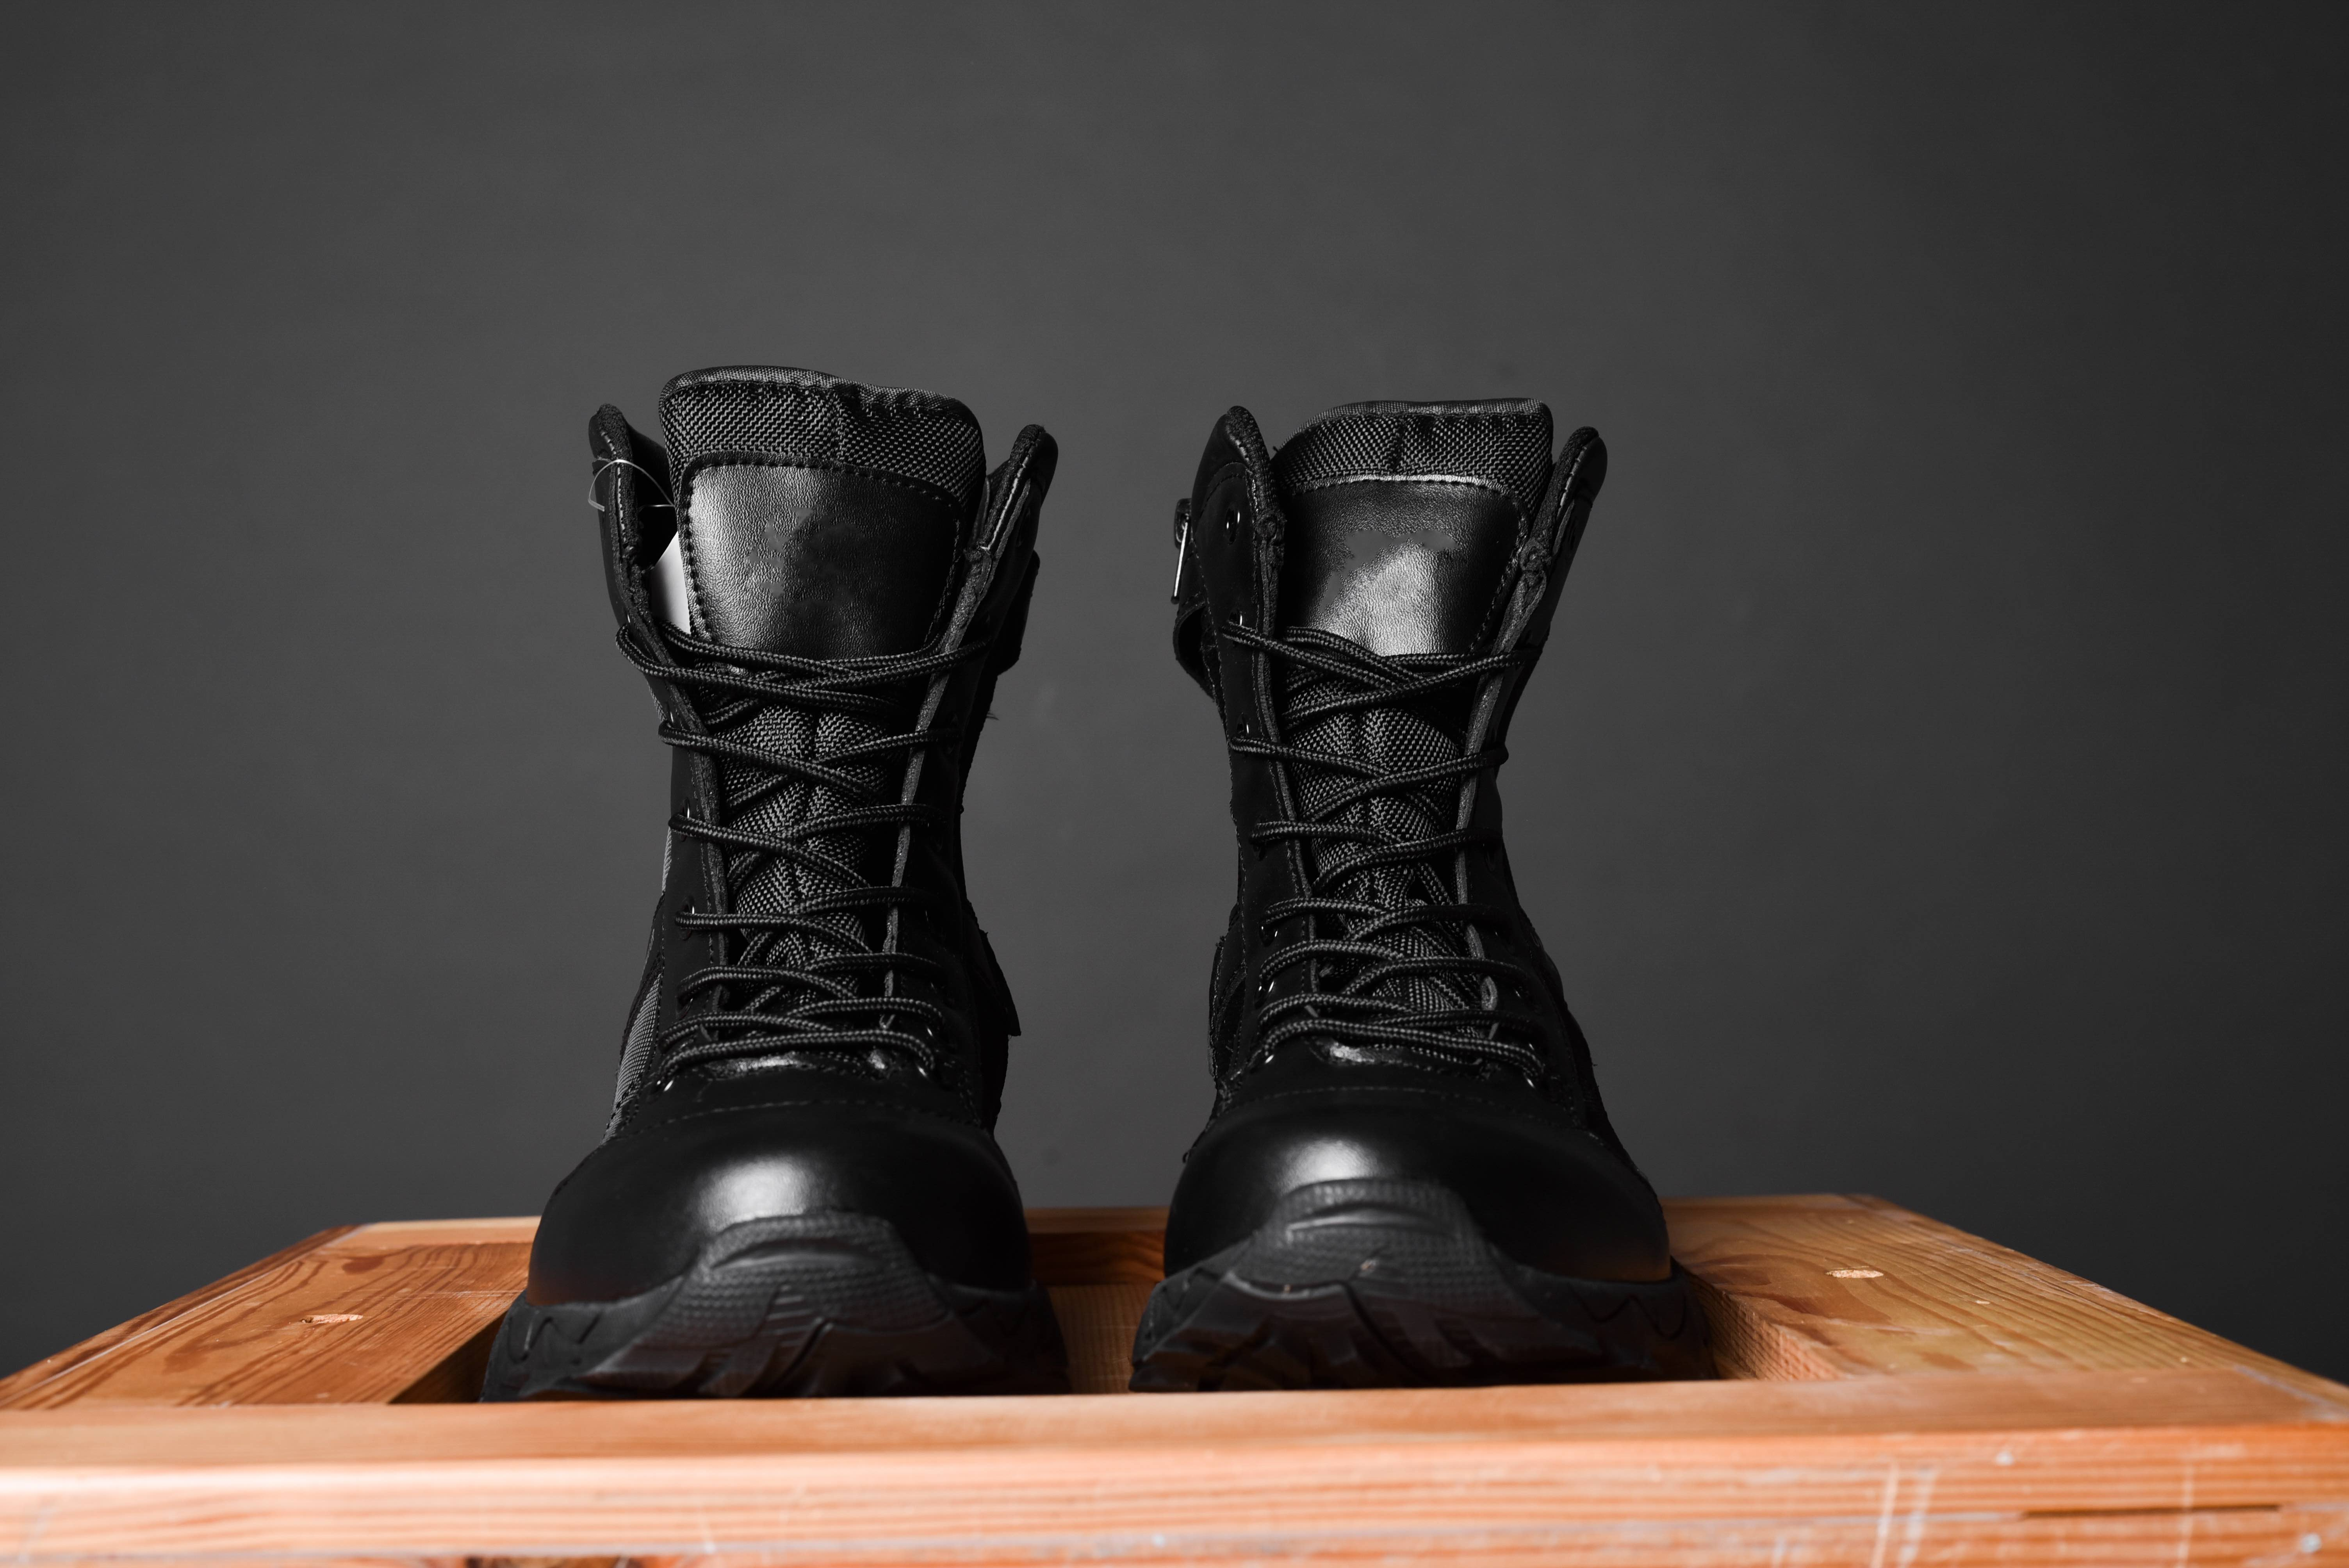 police duty boots